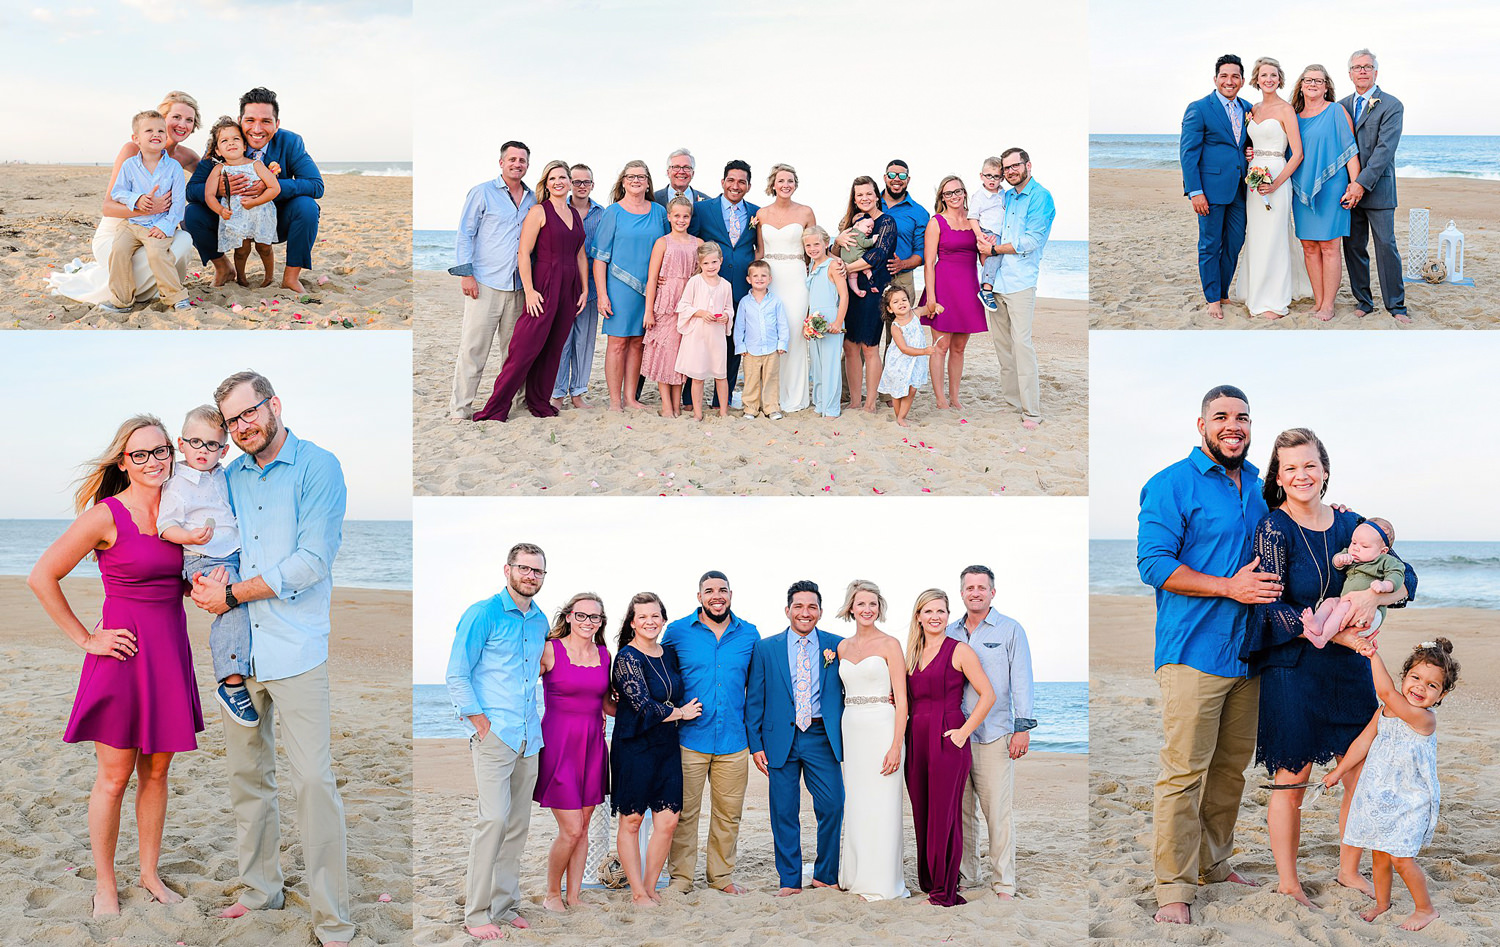 destination-virginia-beach-wedding-sunset-group-photos-melissablissphotography.jpg